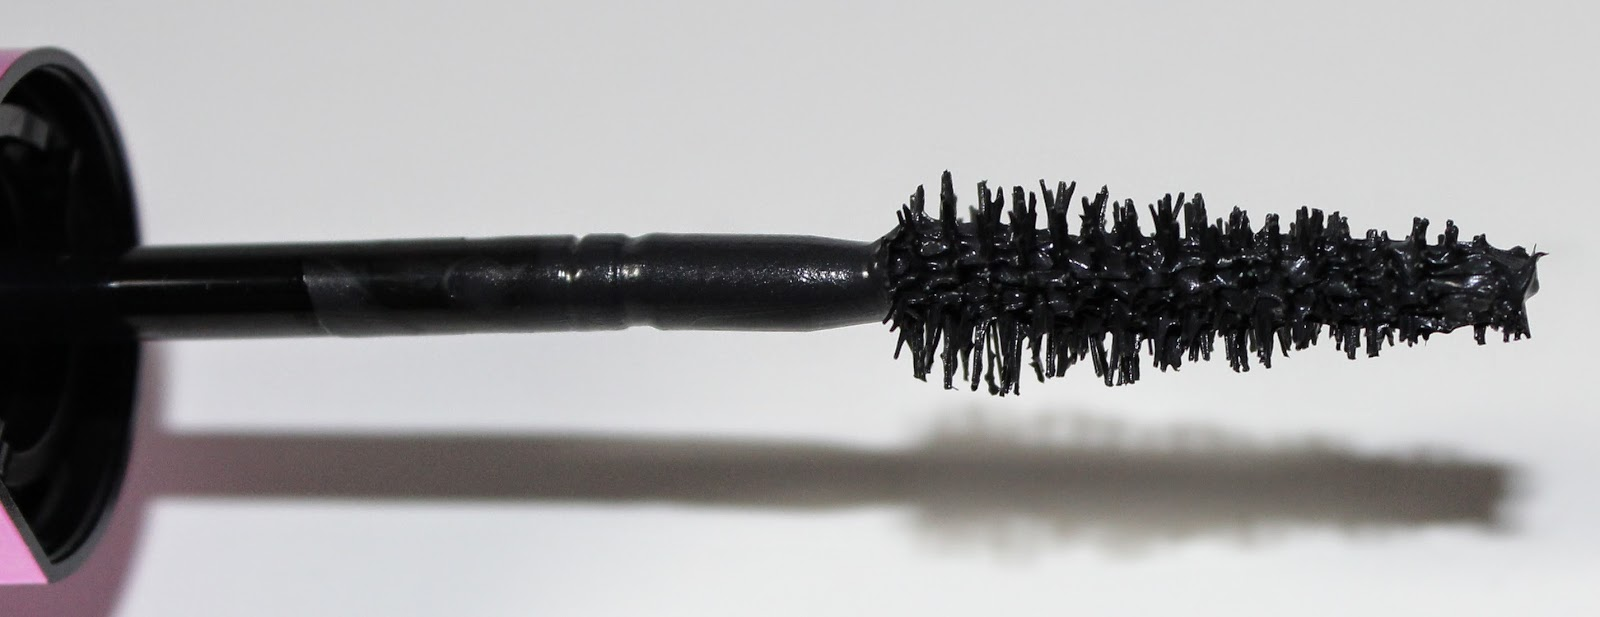 L'Oreal Miss Manga Mascara in Black wand